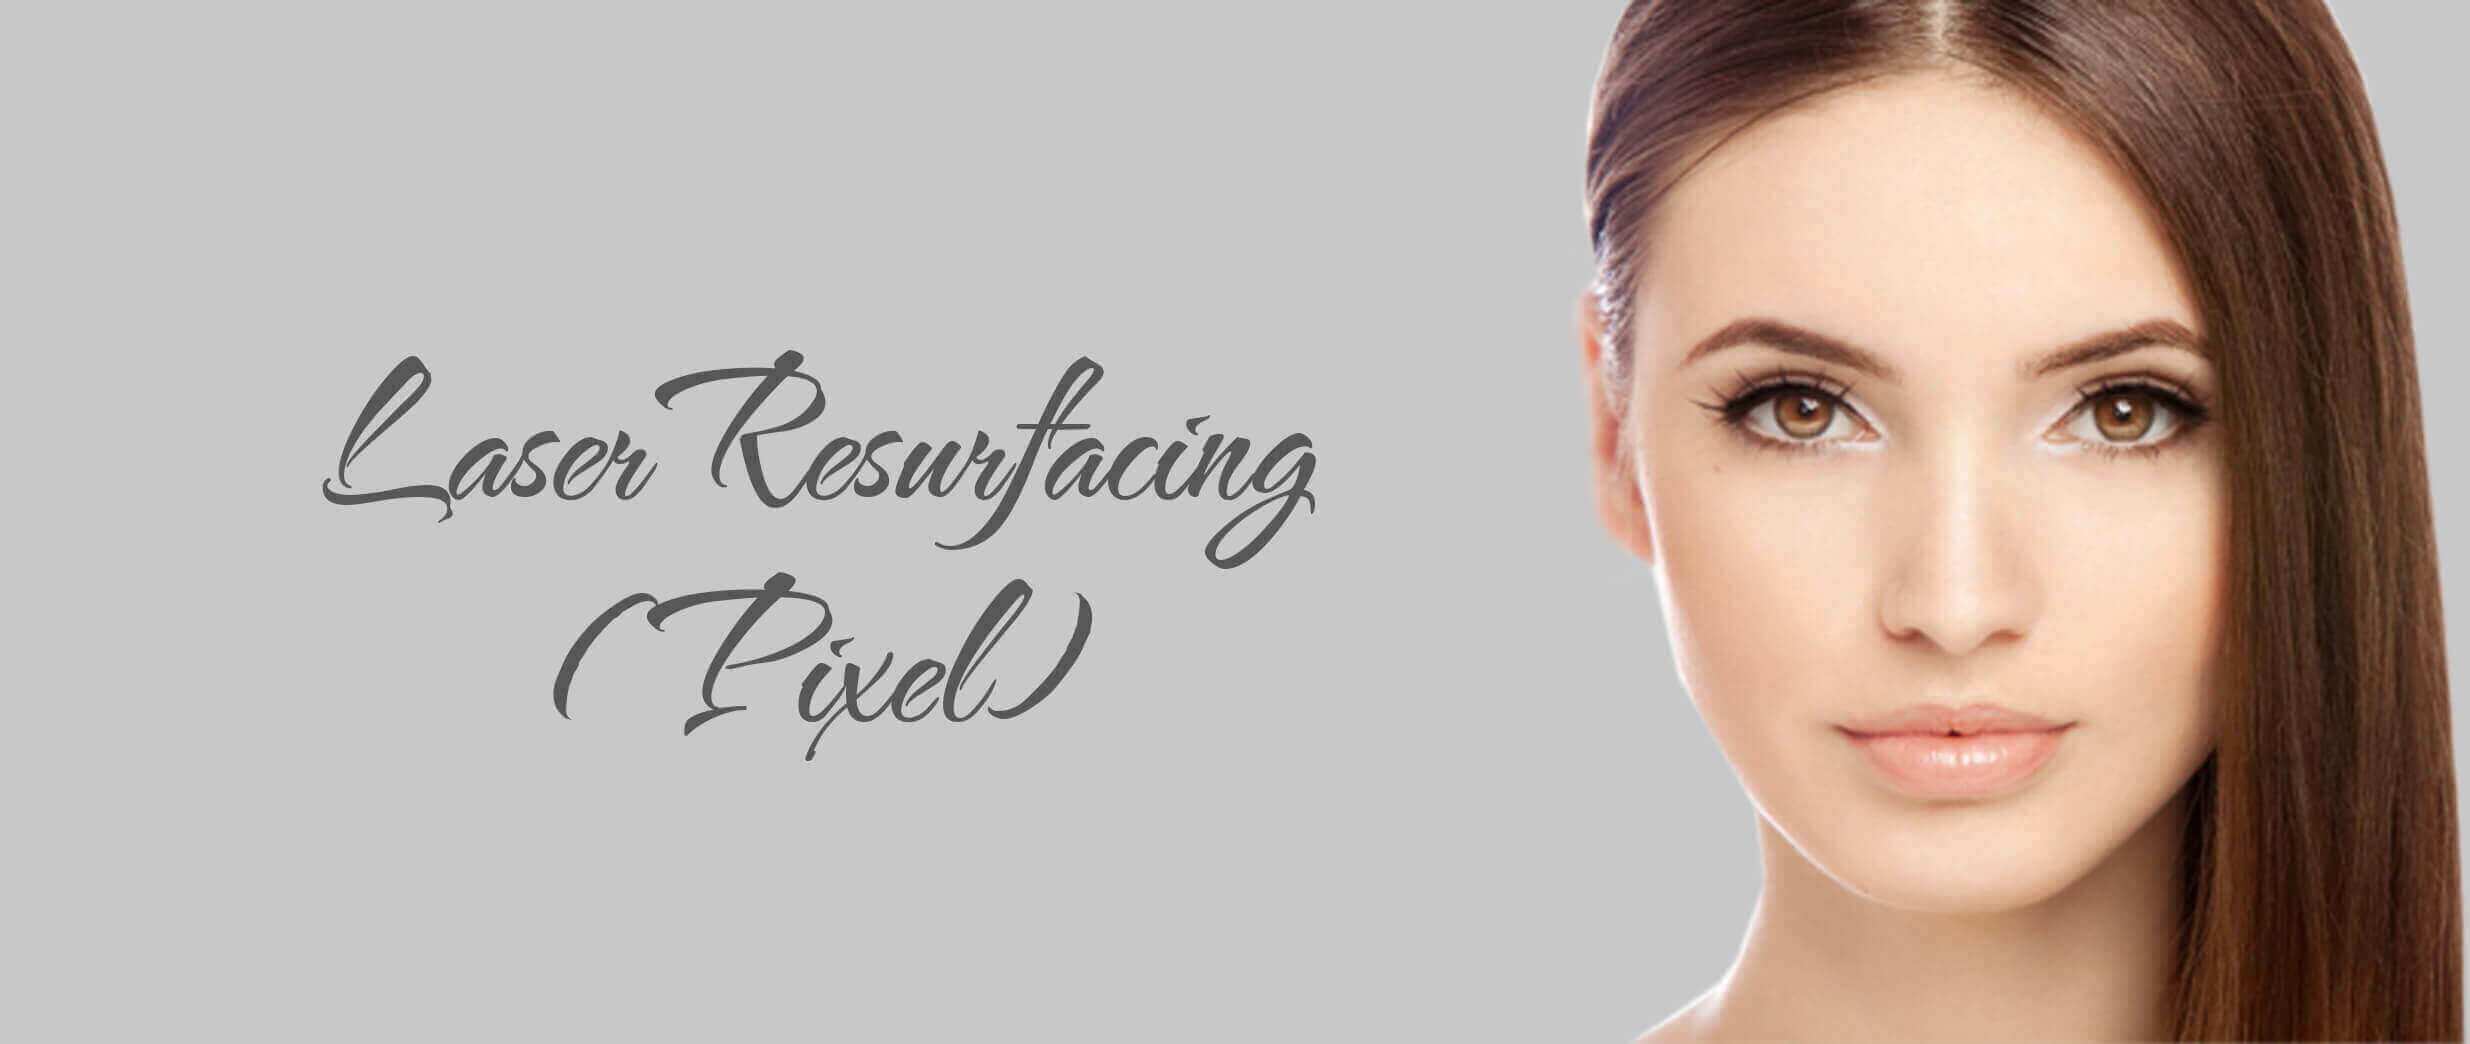 skin resurfacing treatment in Delhi